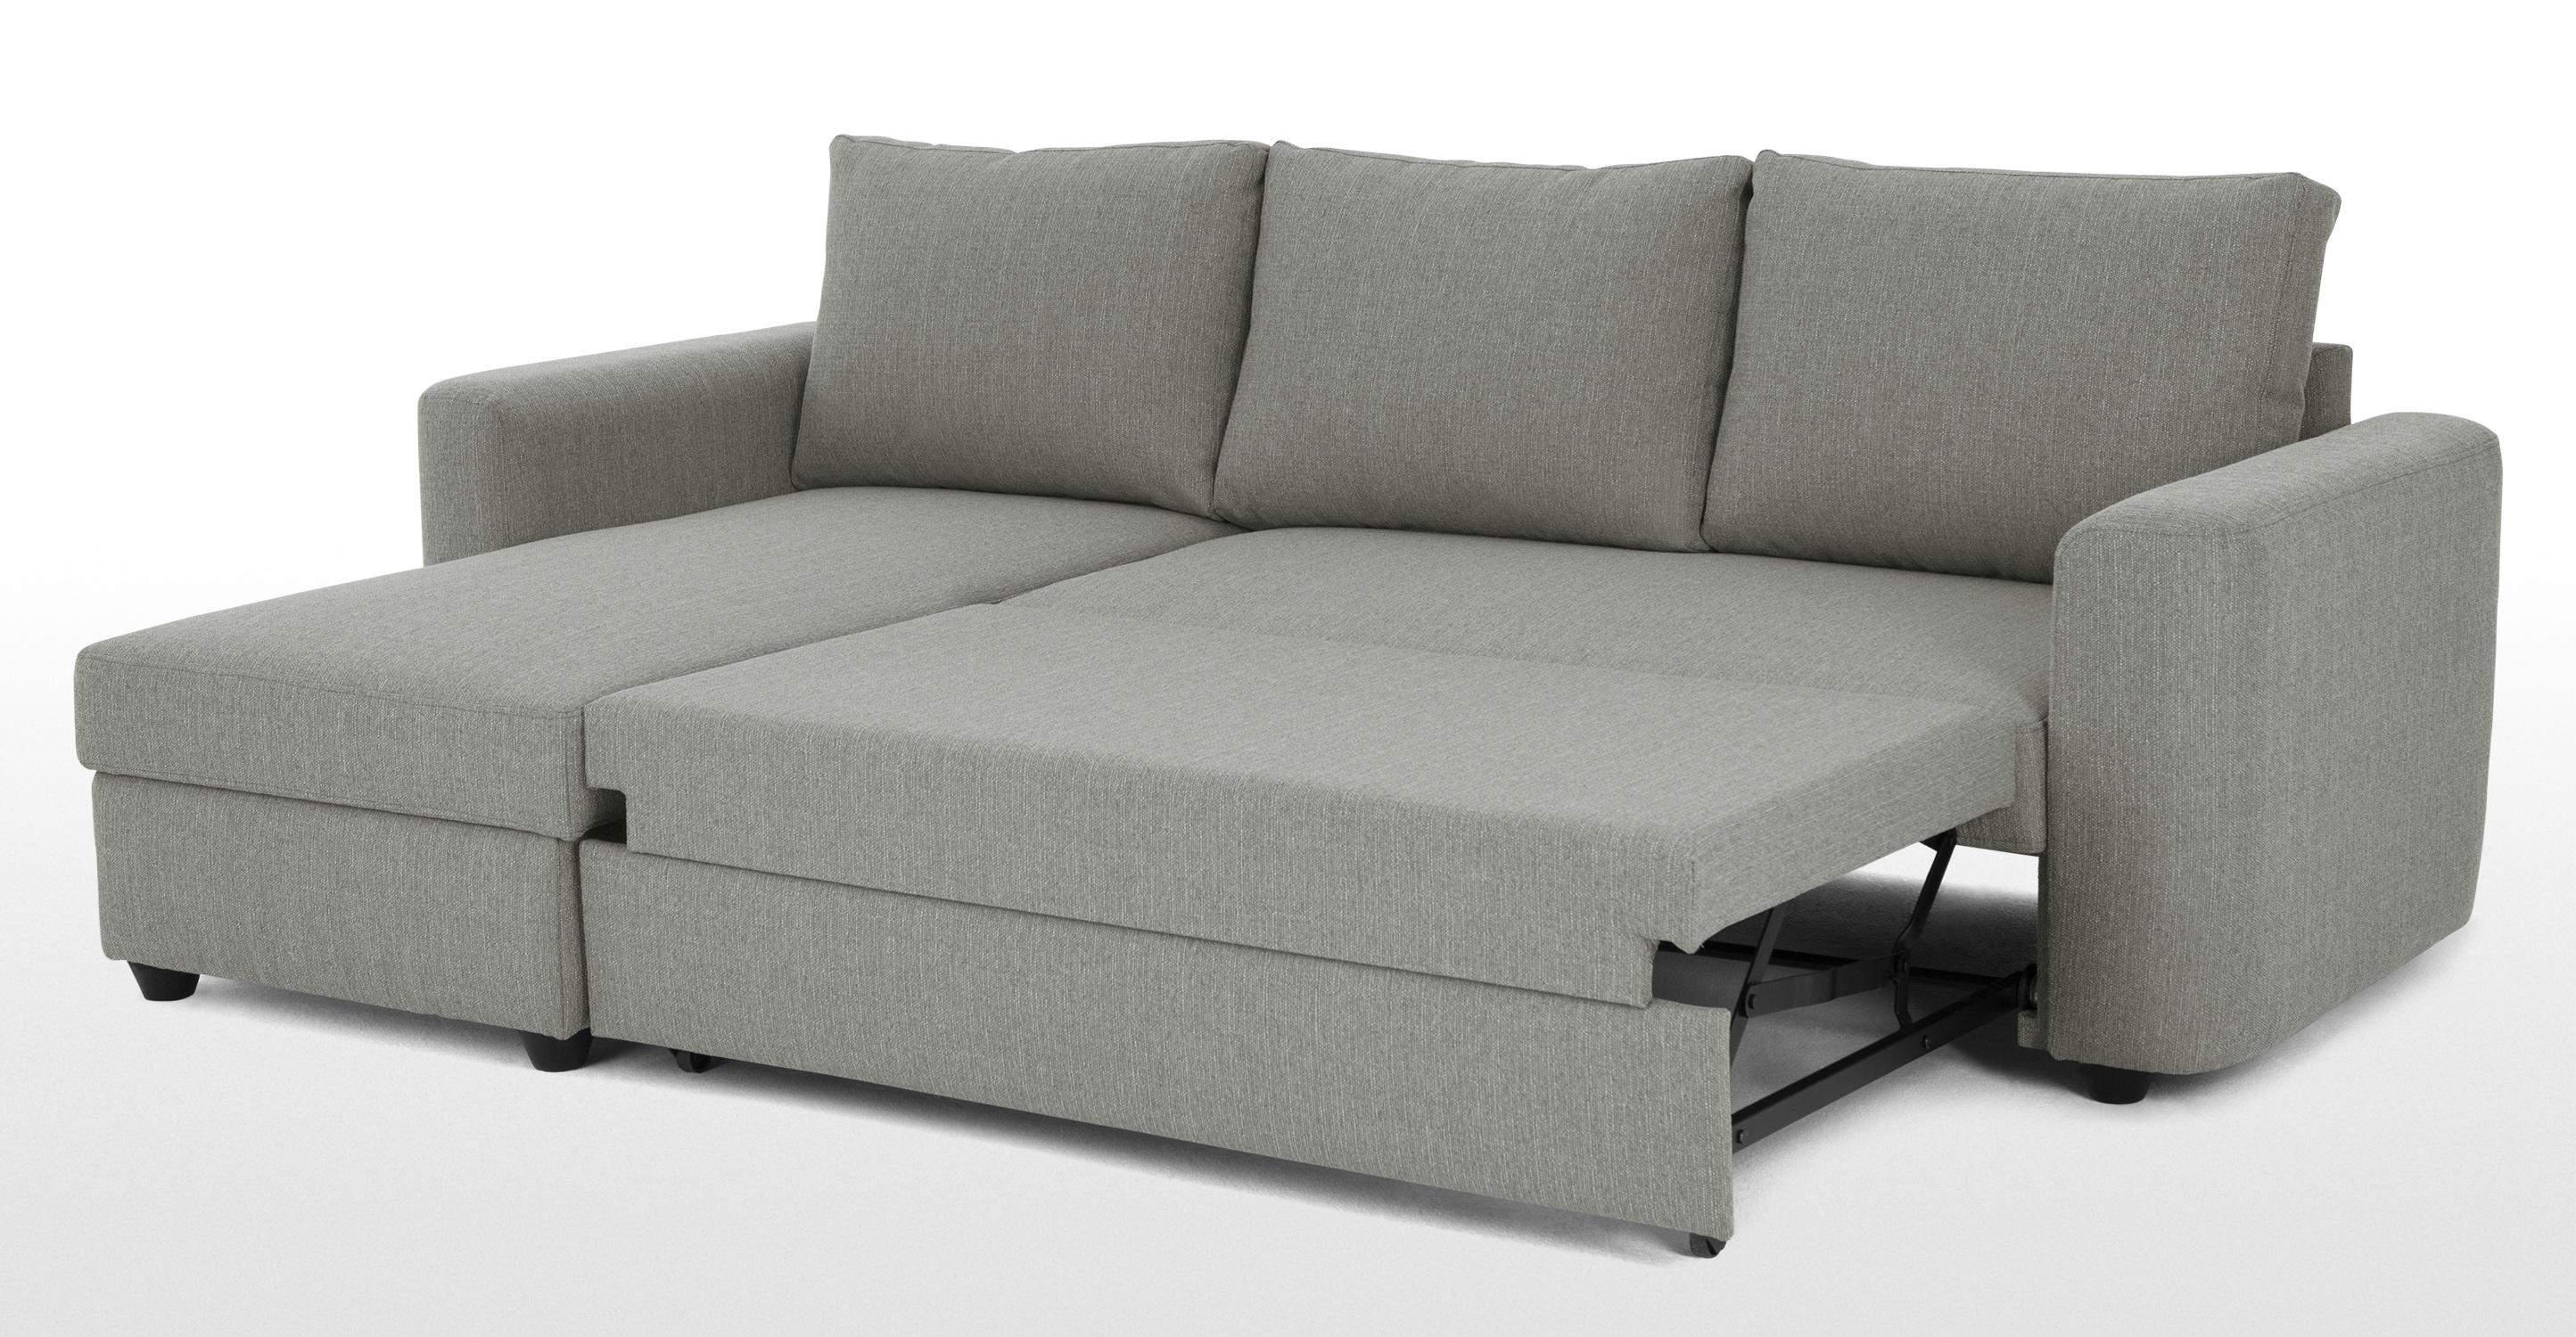 Sofas Center : 46 Unusual Corner Sofa Bed With Storage Picture Within Cheap Corner Sofa Beds (Image 15 of 20)